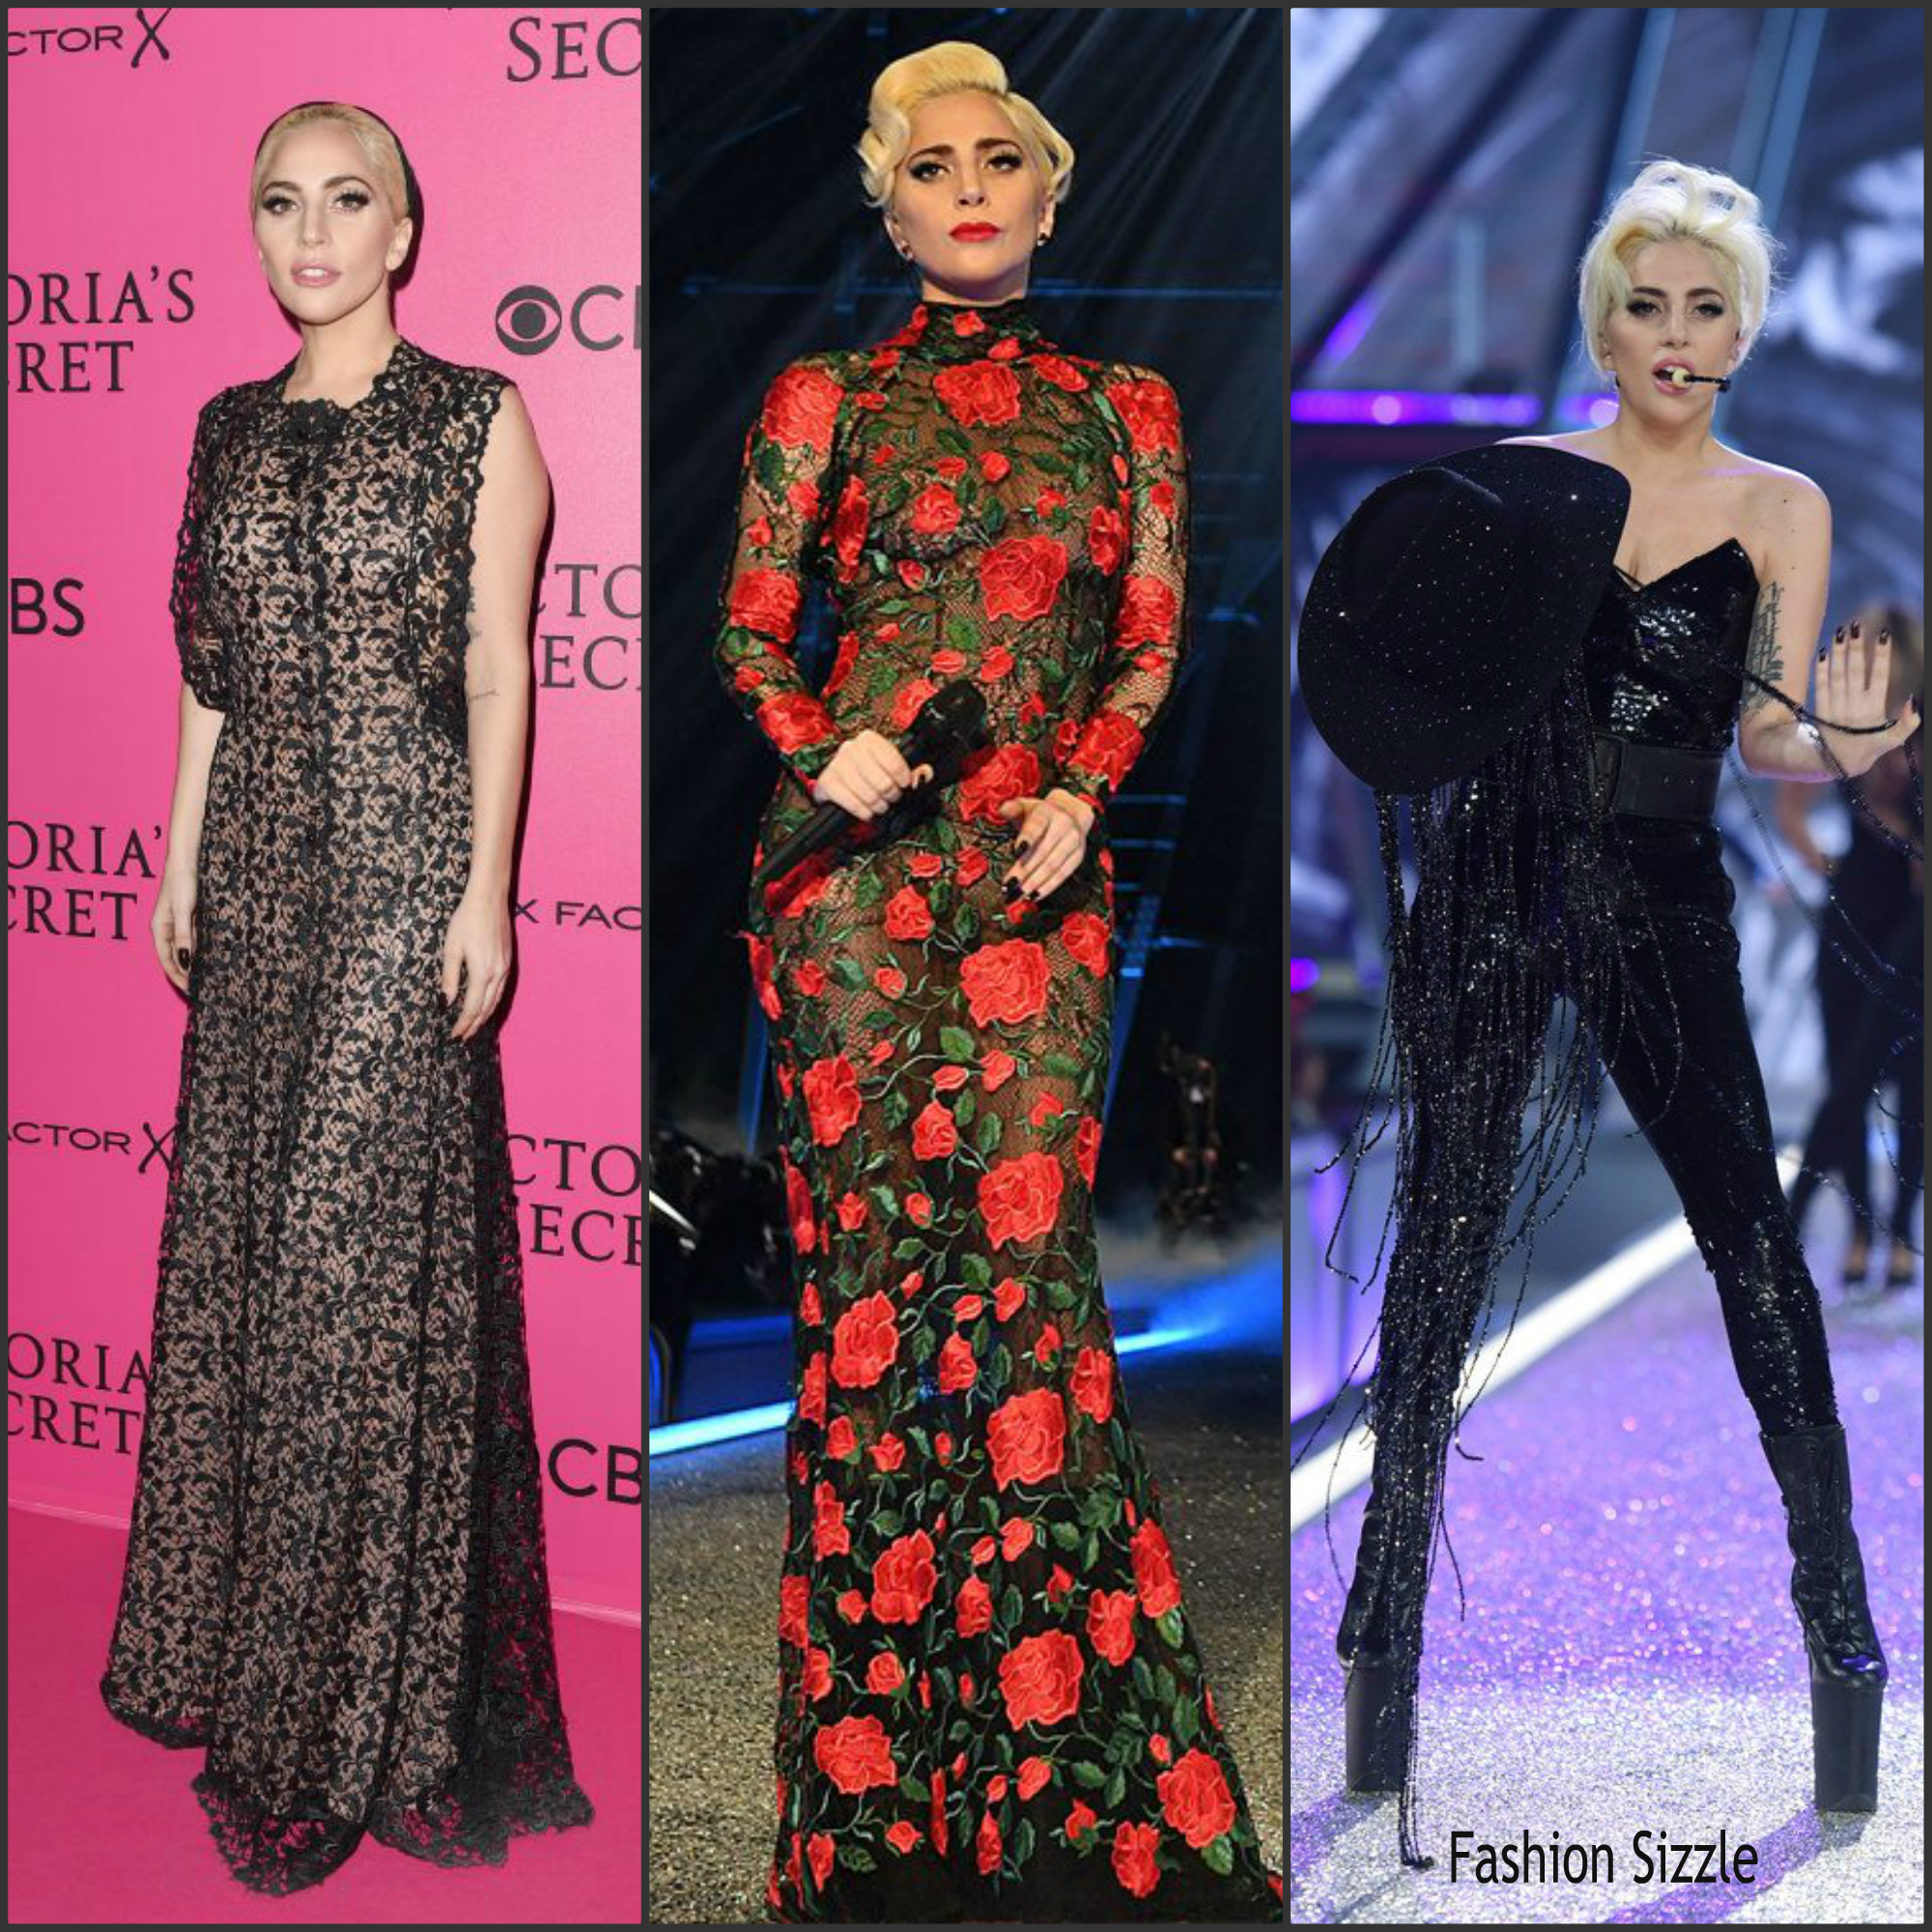 lady-gaga-outfits-at-the-2016-victoria-secret-fashionshow-in-paris